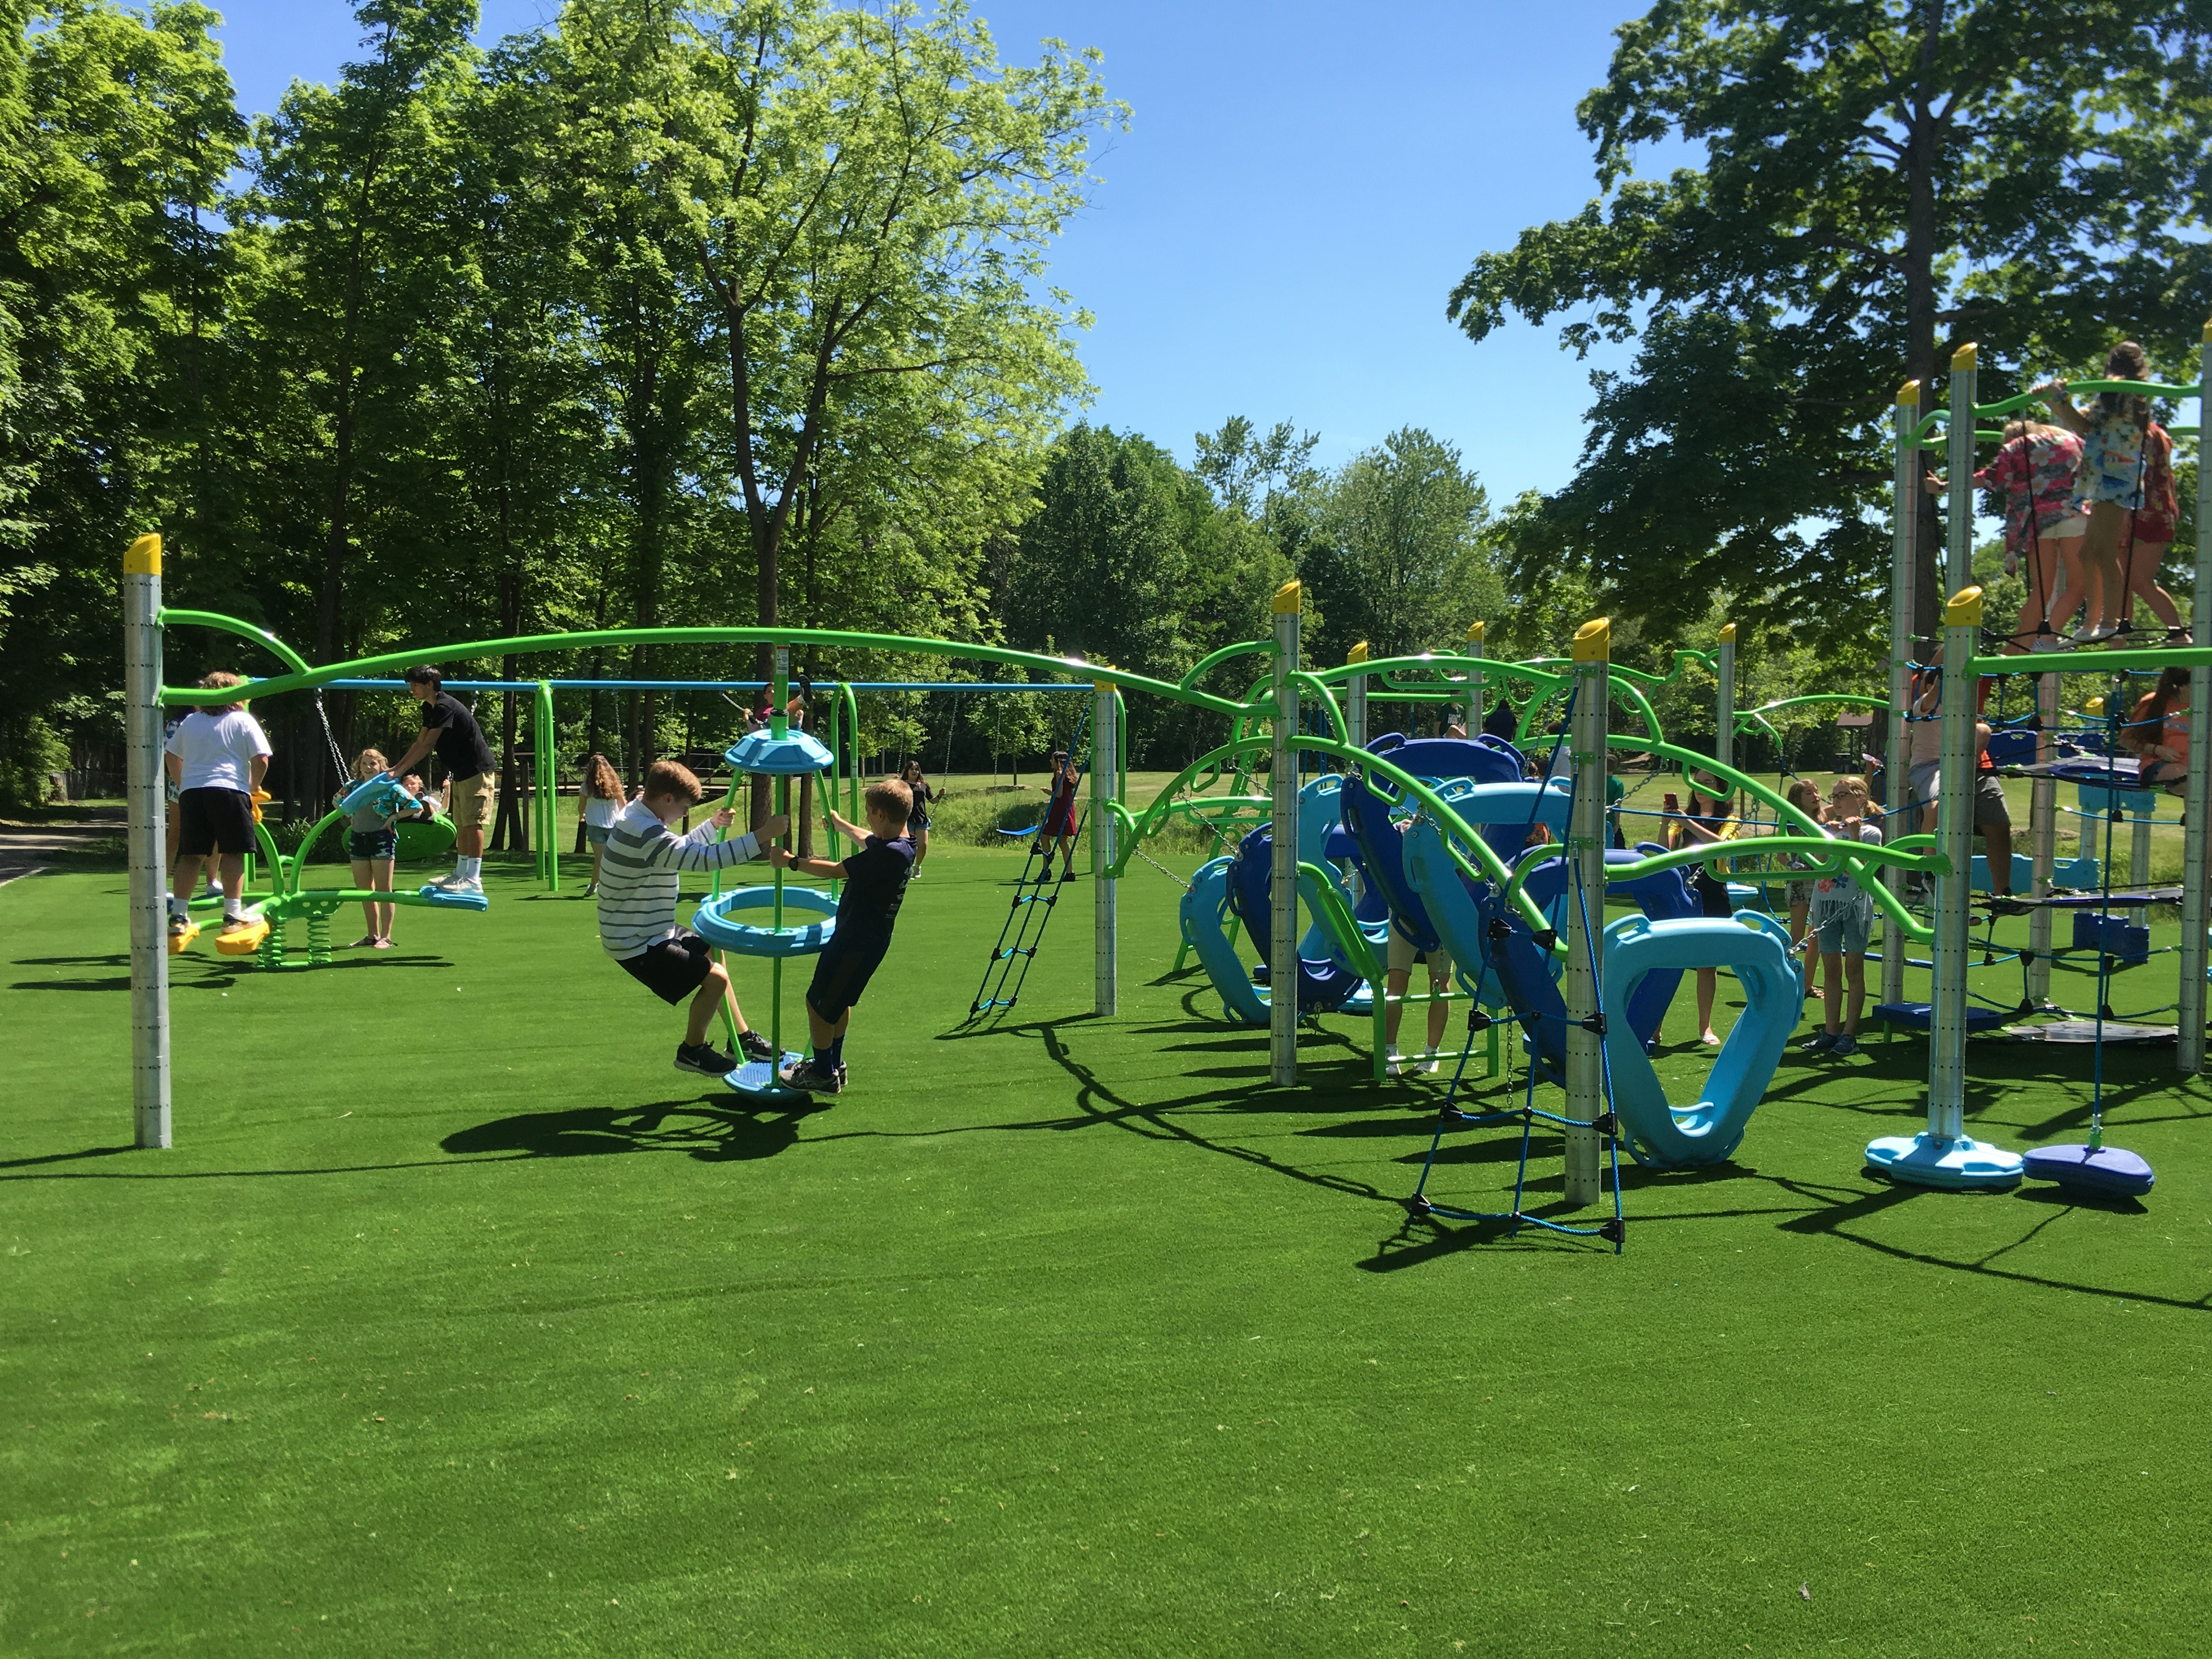 Photo for: PRESS RELEASE: Student-Designed Park Opens in Westfield